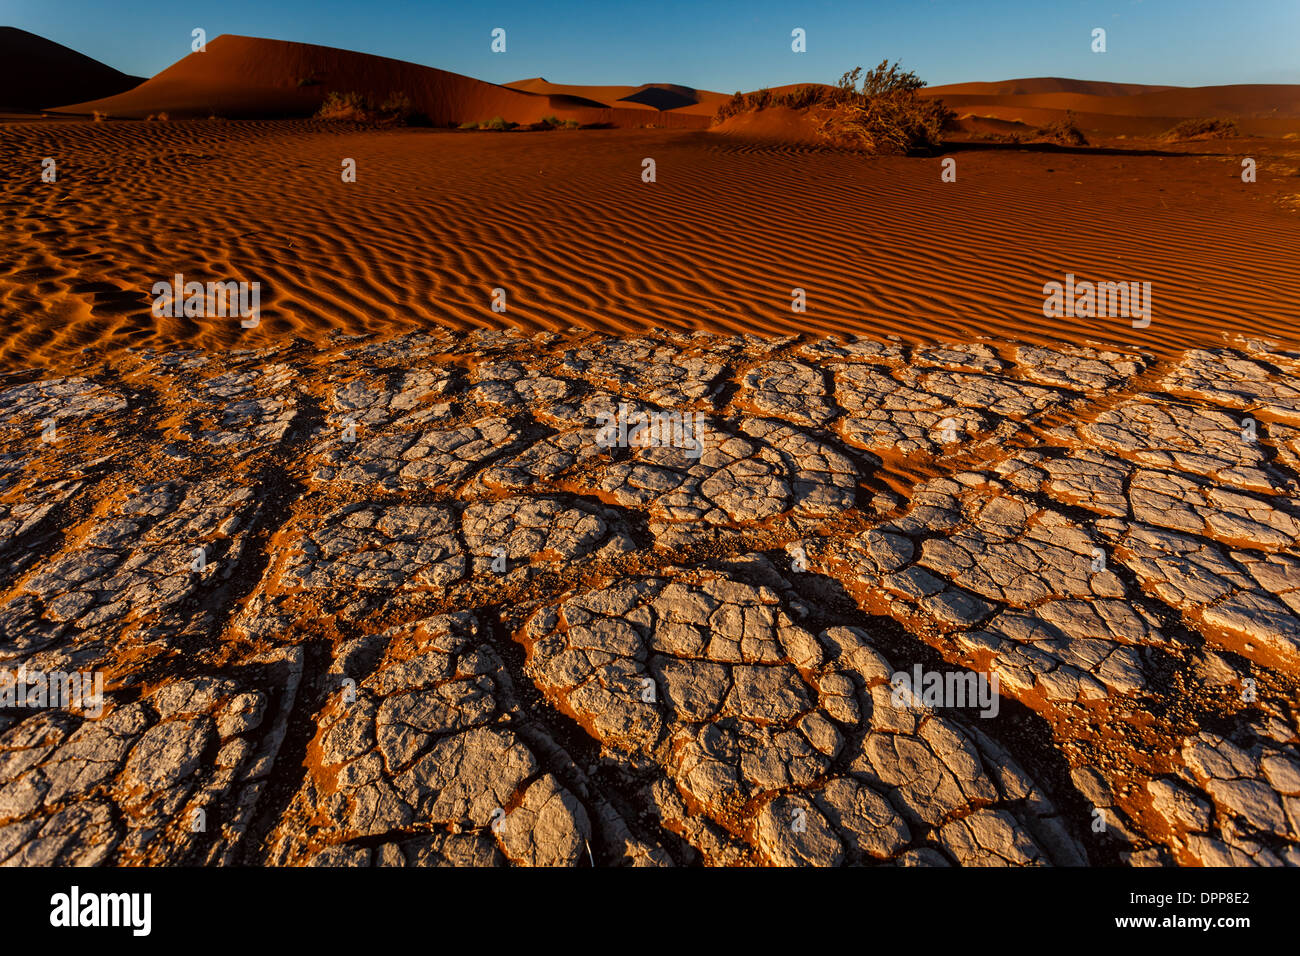 Two patterns side by side, dry cracked mud and windblown rippled red sand on sunbaked oasis river bed in Namibia. - Stock Image